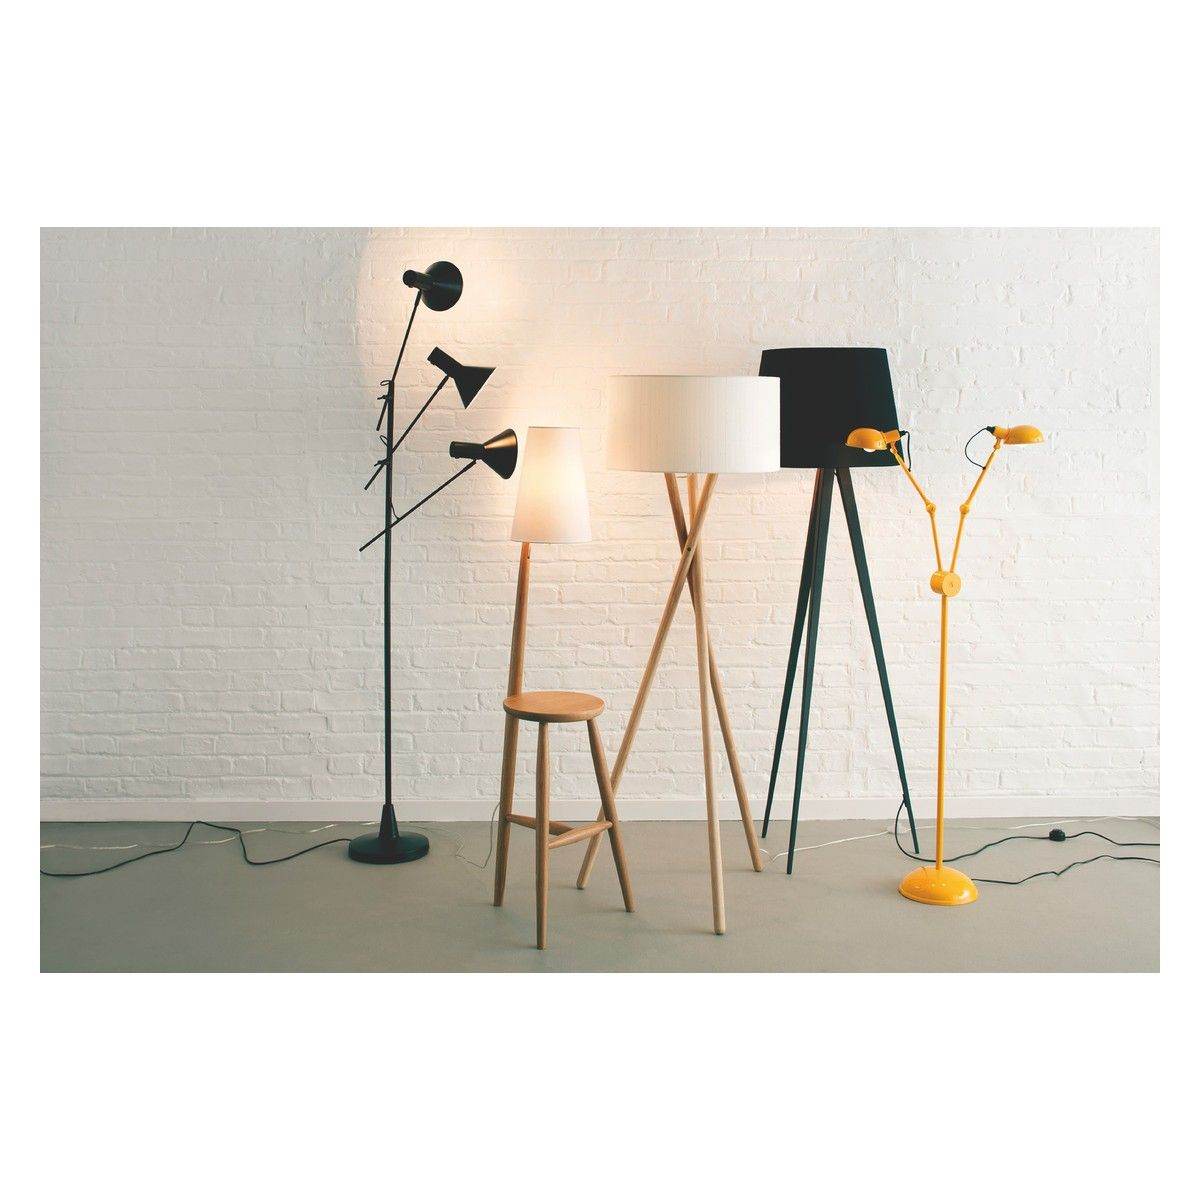 Lansbury Base Ash Wooden Tripod Floor Lamp Oak Floor Lamp Floor Lamp Metal Floor Lamps